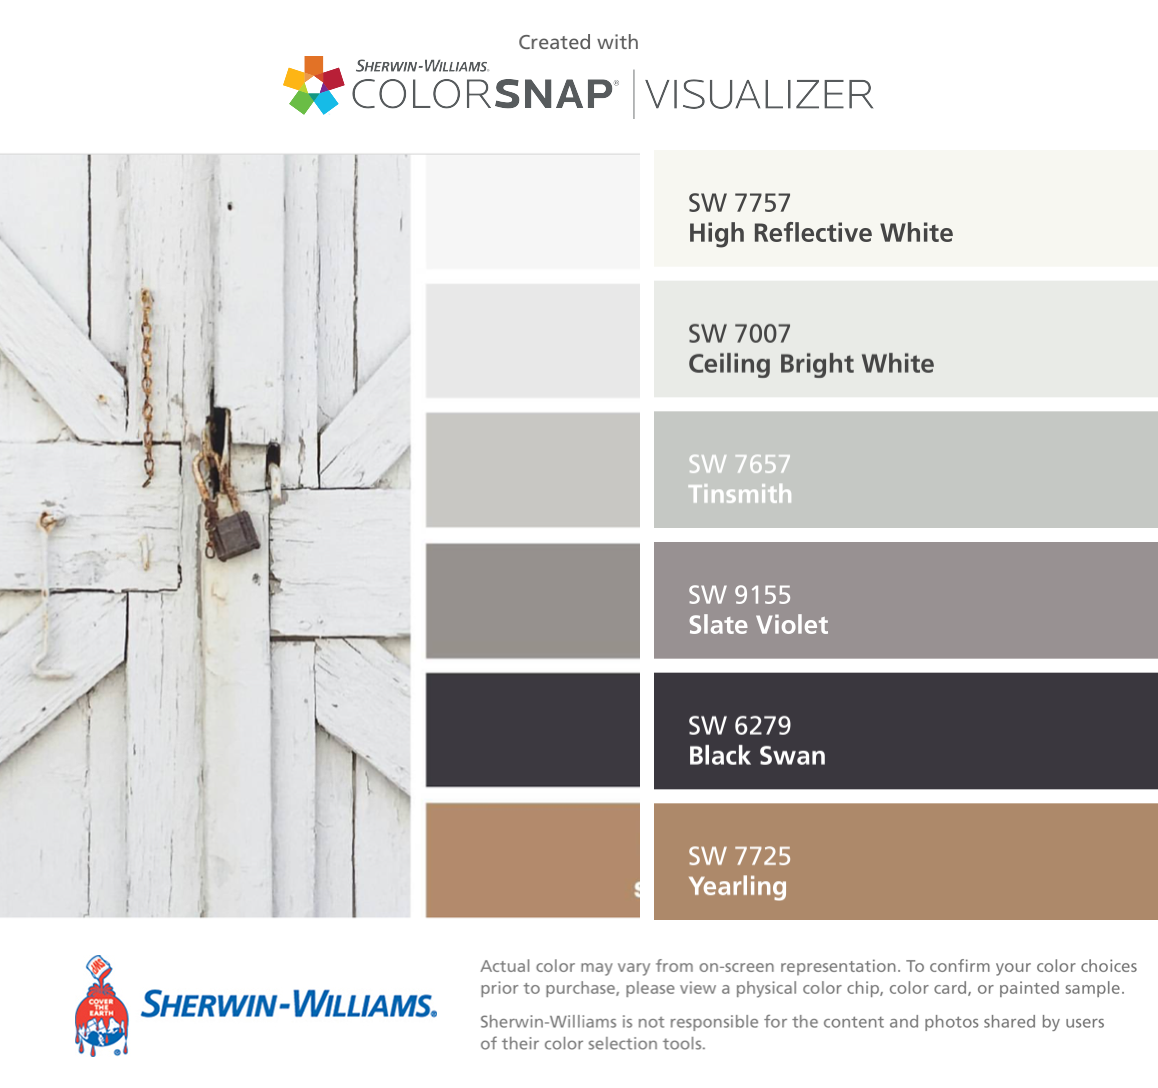 I Found These Colors With Colorsnap Visualizer For Iphone By Sherwin Williams High Reflective White Sw 7757 Ceiling B Room Color Schemes Room Colors Color